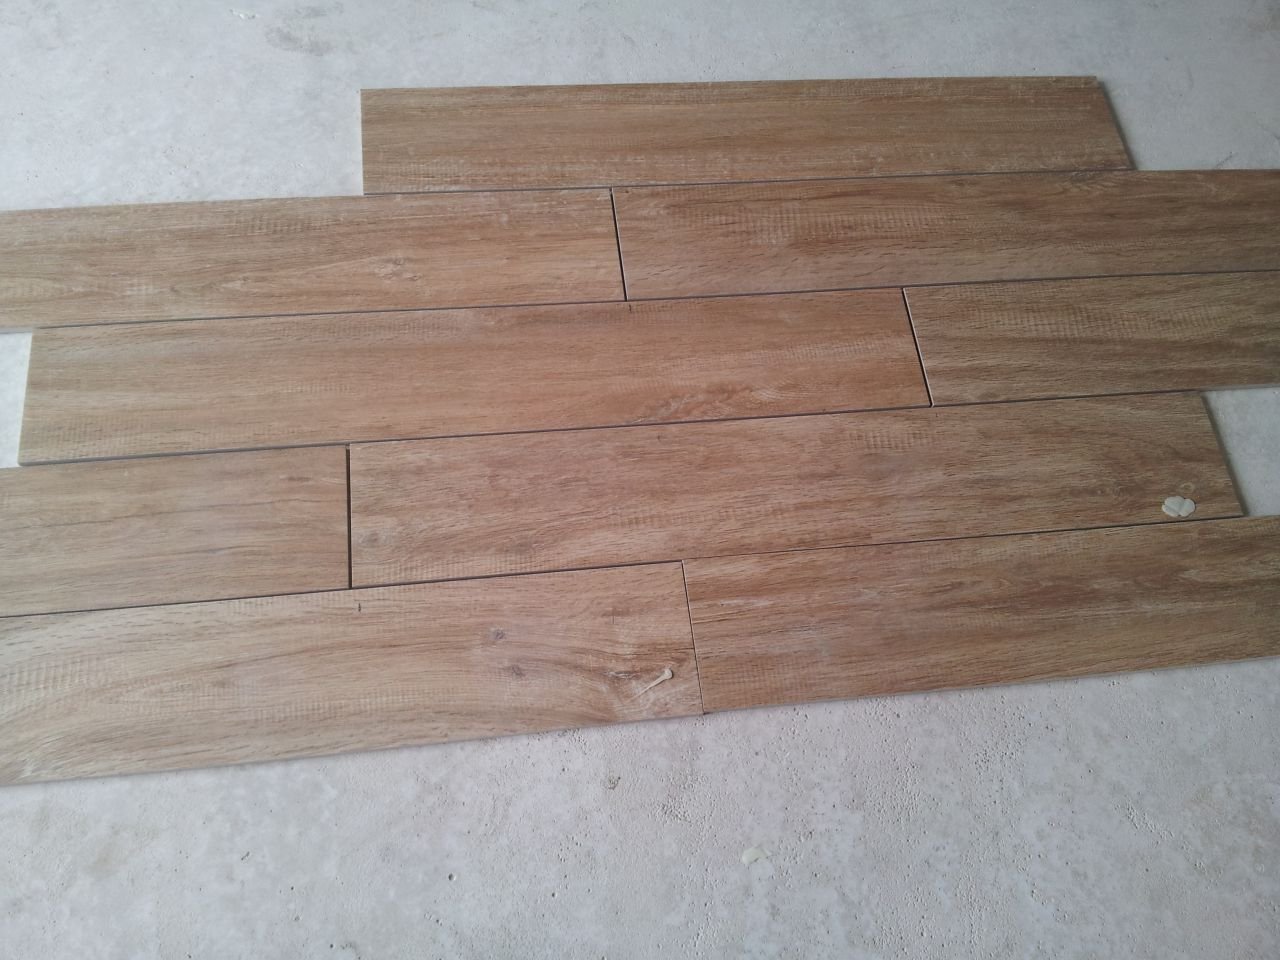 Sens et technique de pose pr carrelage imitation parquet for Pose plinthe carrelage